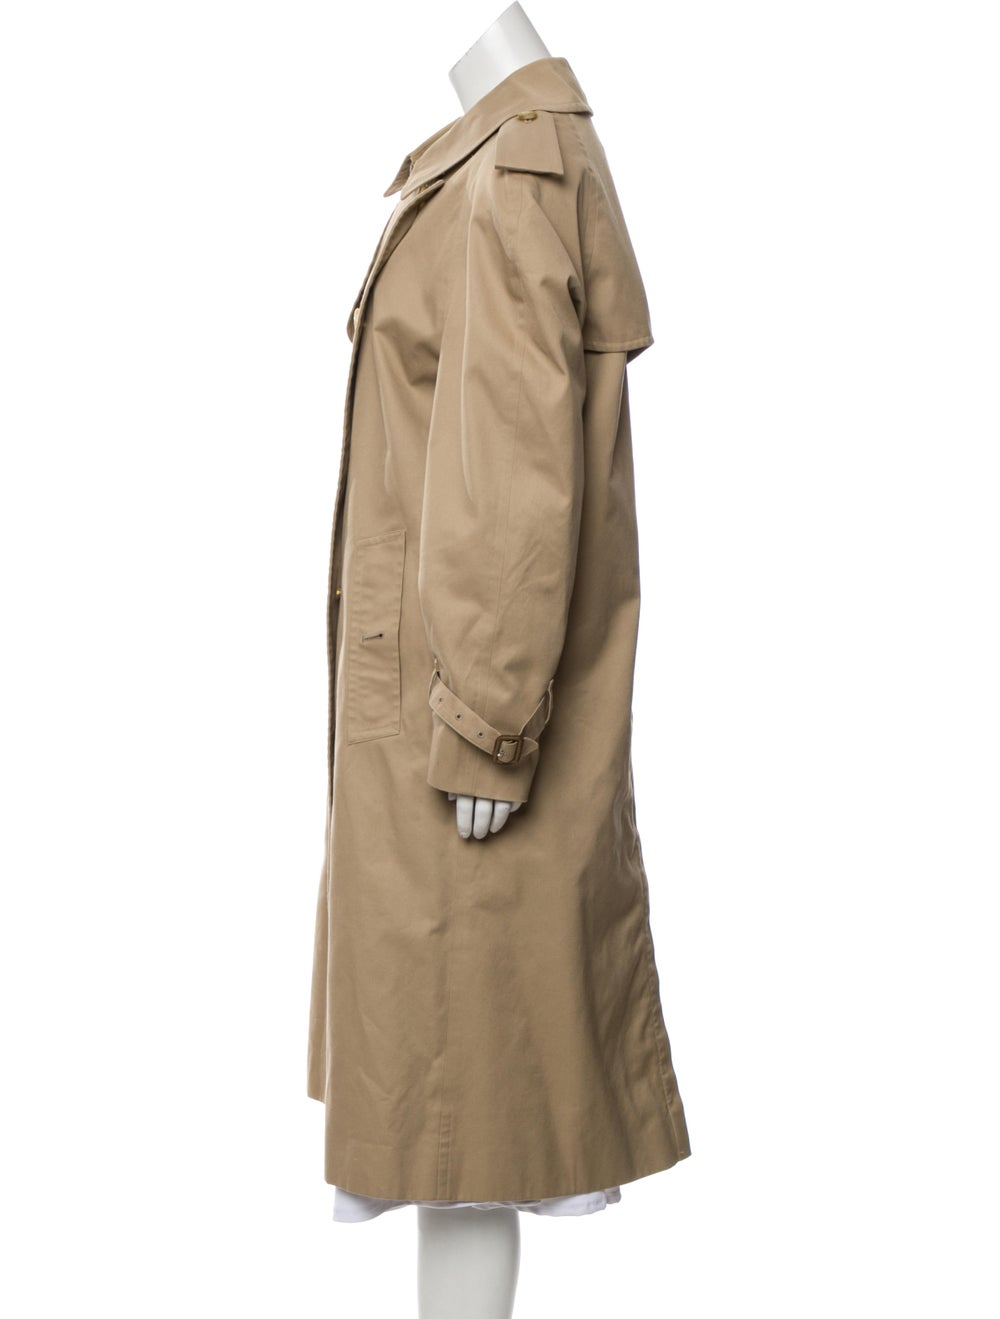 Burberry Double-Breasted Trench Coat Beige - image 2